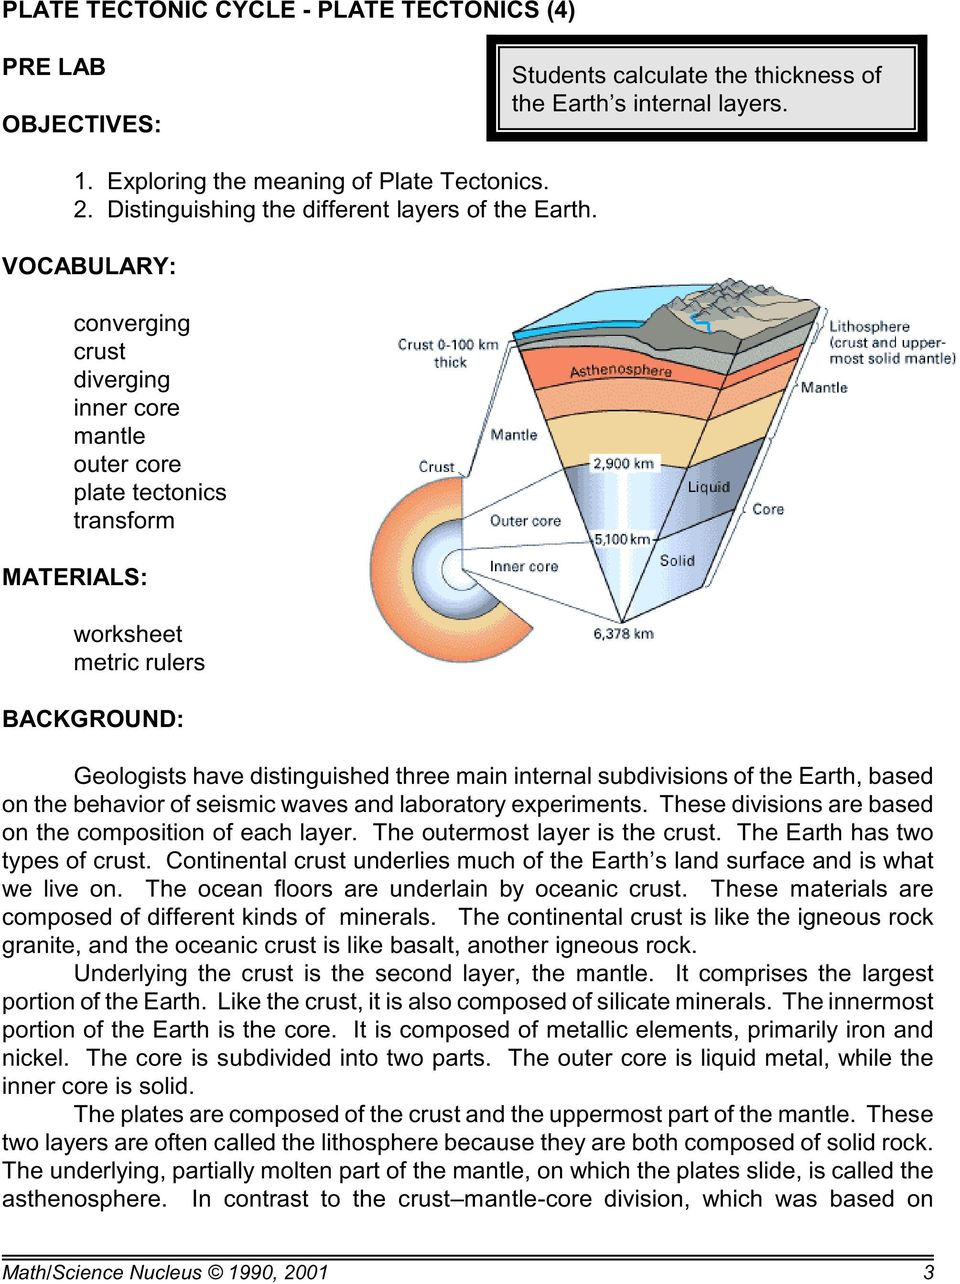 VOCABULARY: converging crust diverging inner core mantle outer core plate tectonics transform MATERIALS: worksheet metric rulers BACKGROUND: Geologists have distinguished three main internal